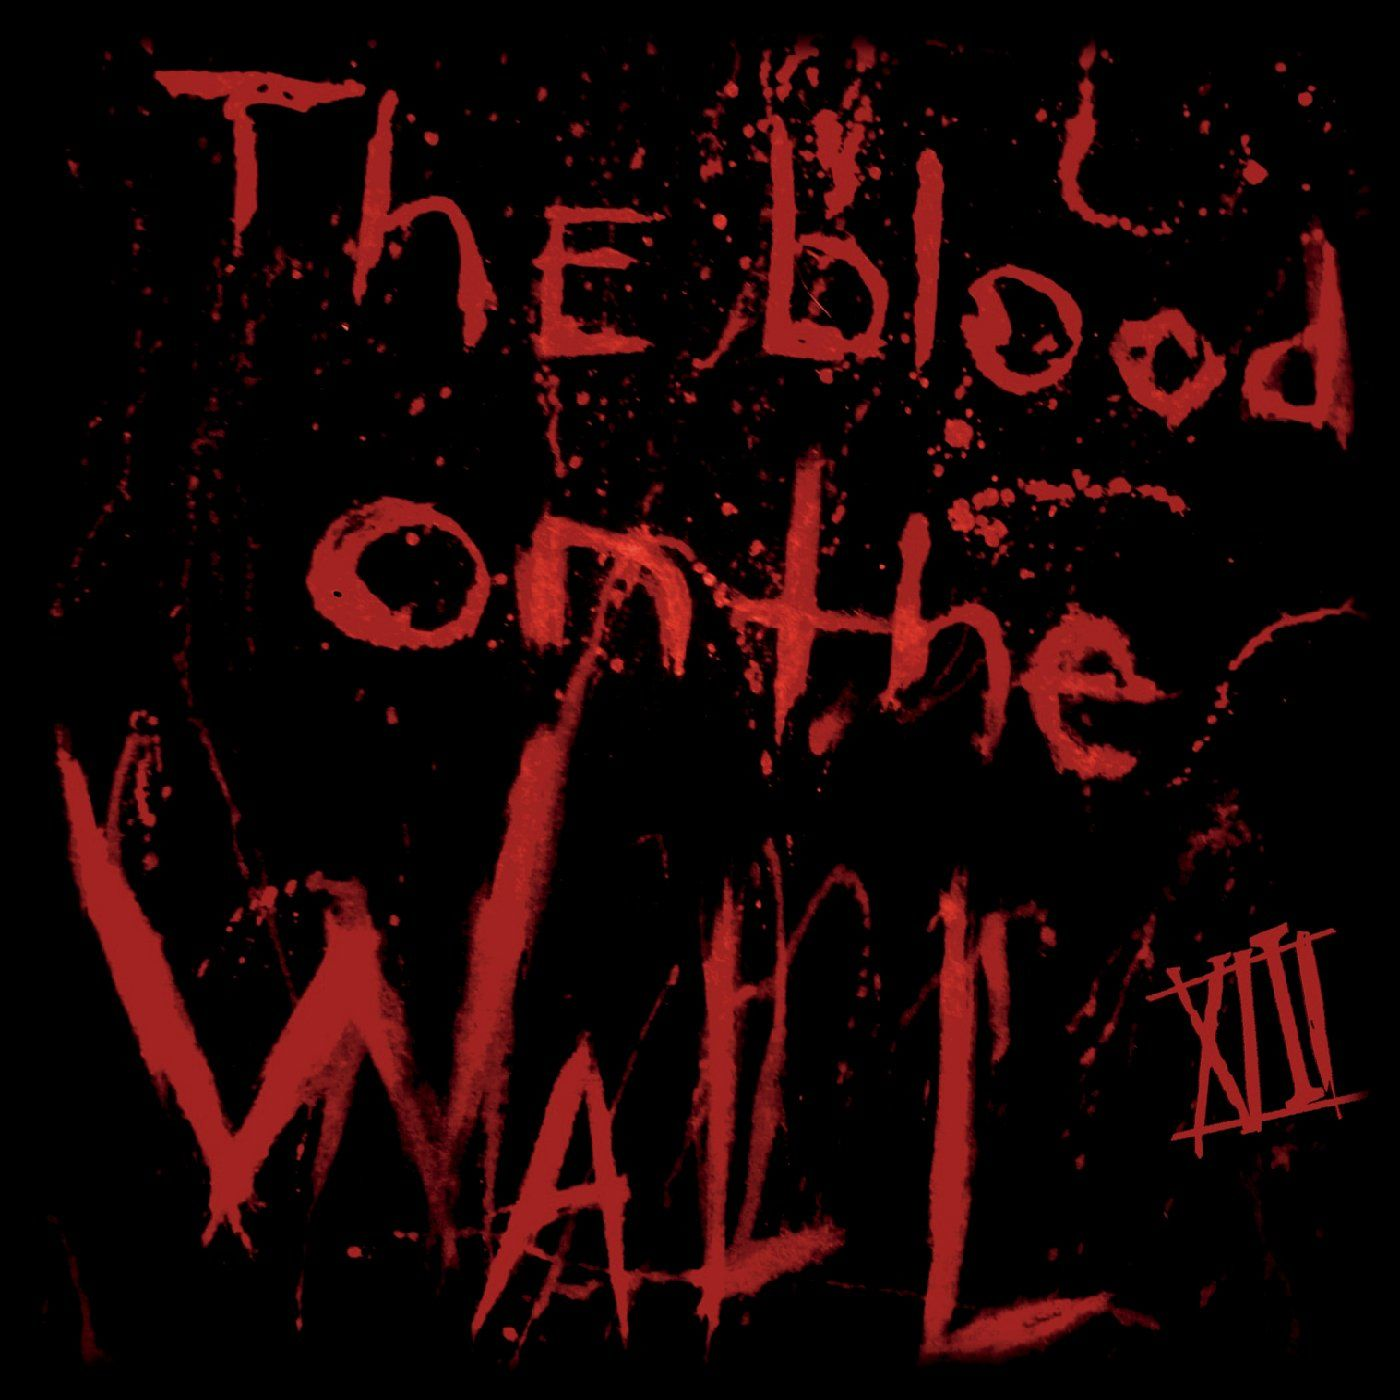 XIII - The Blood on the Wall